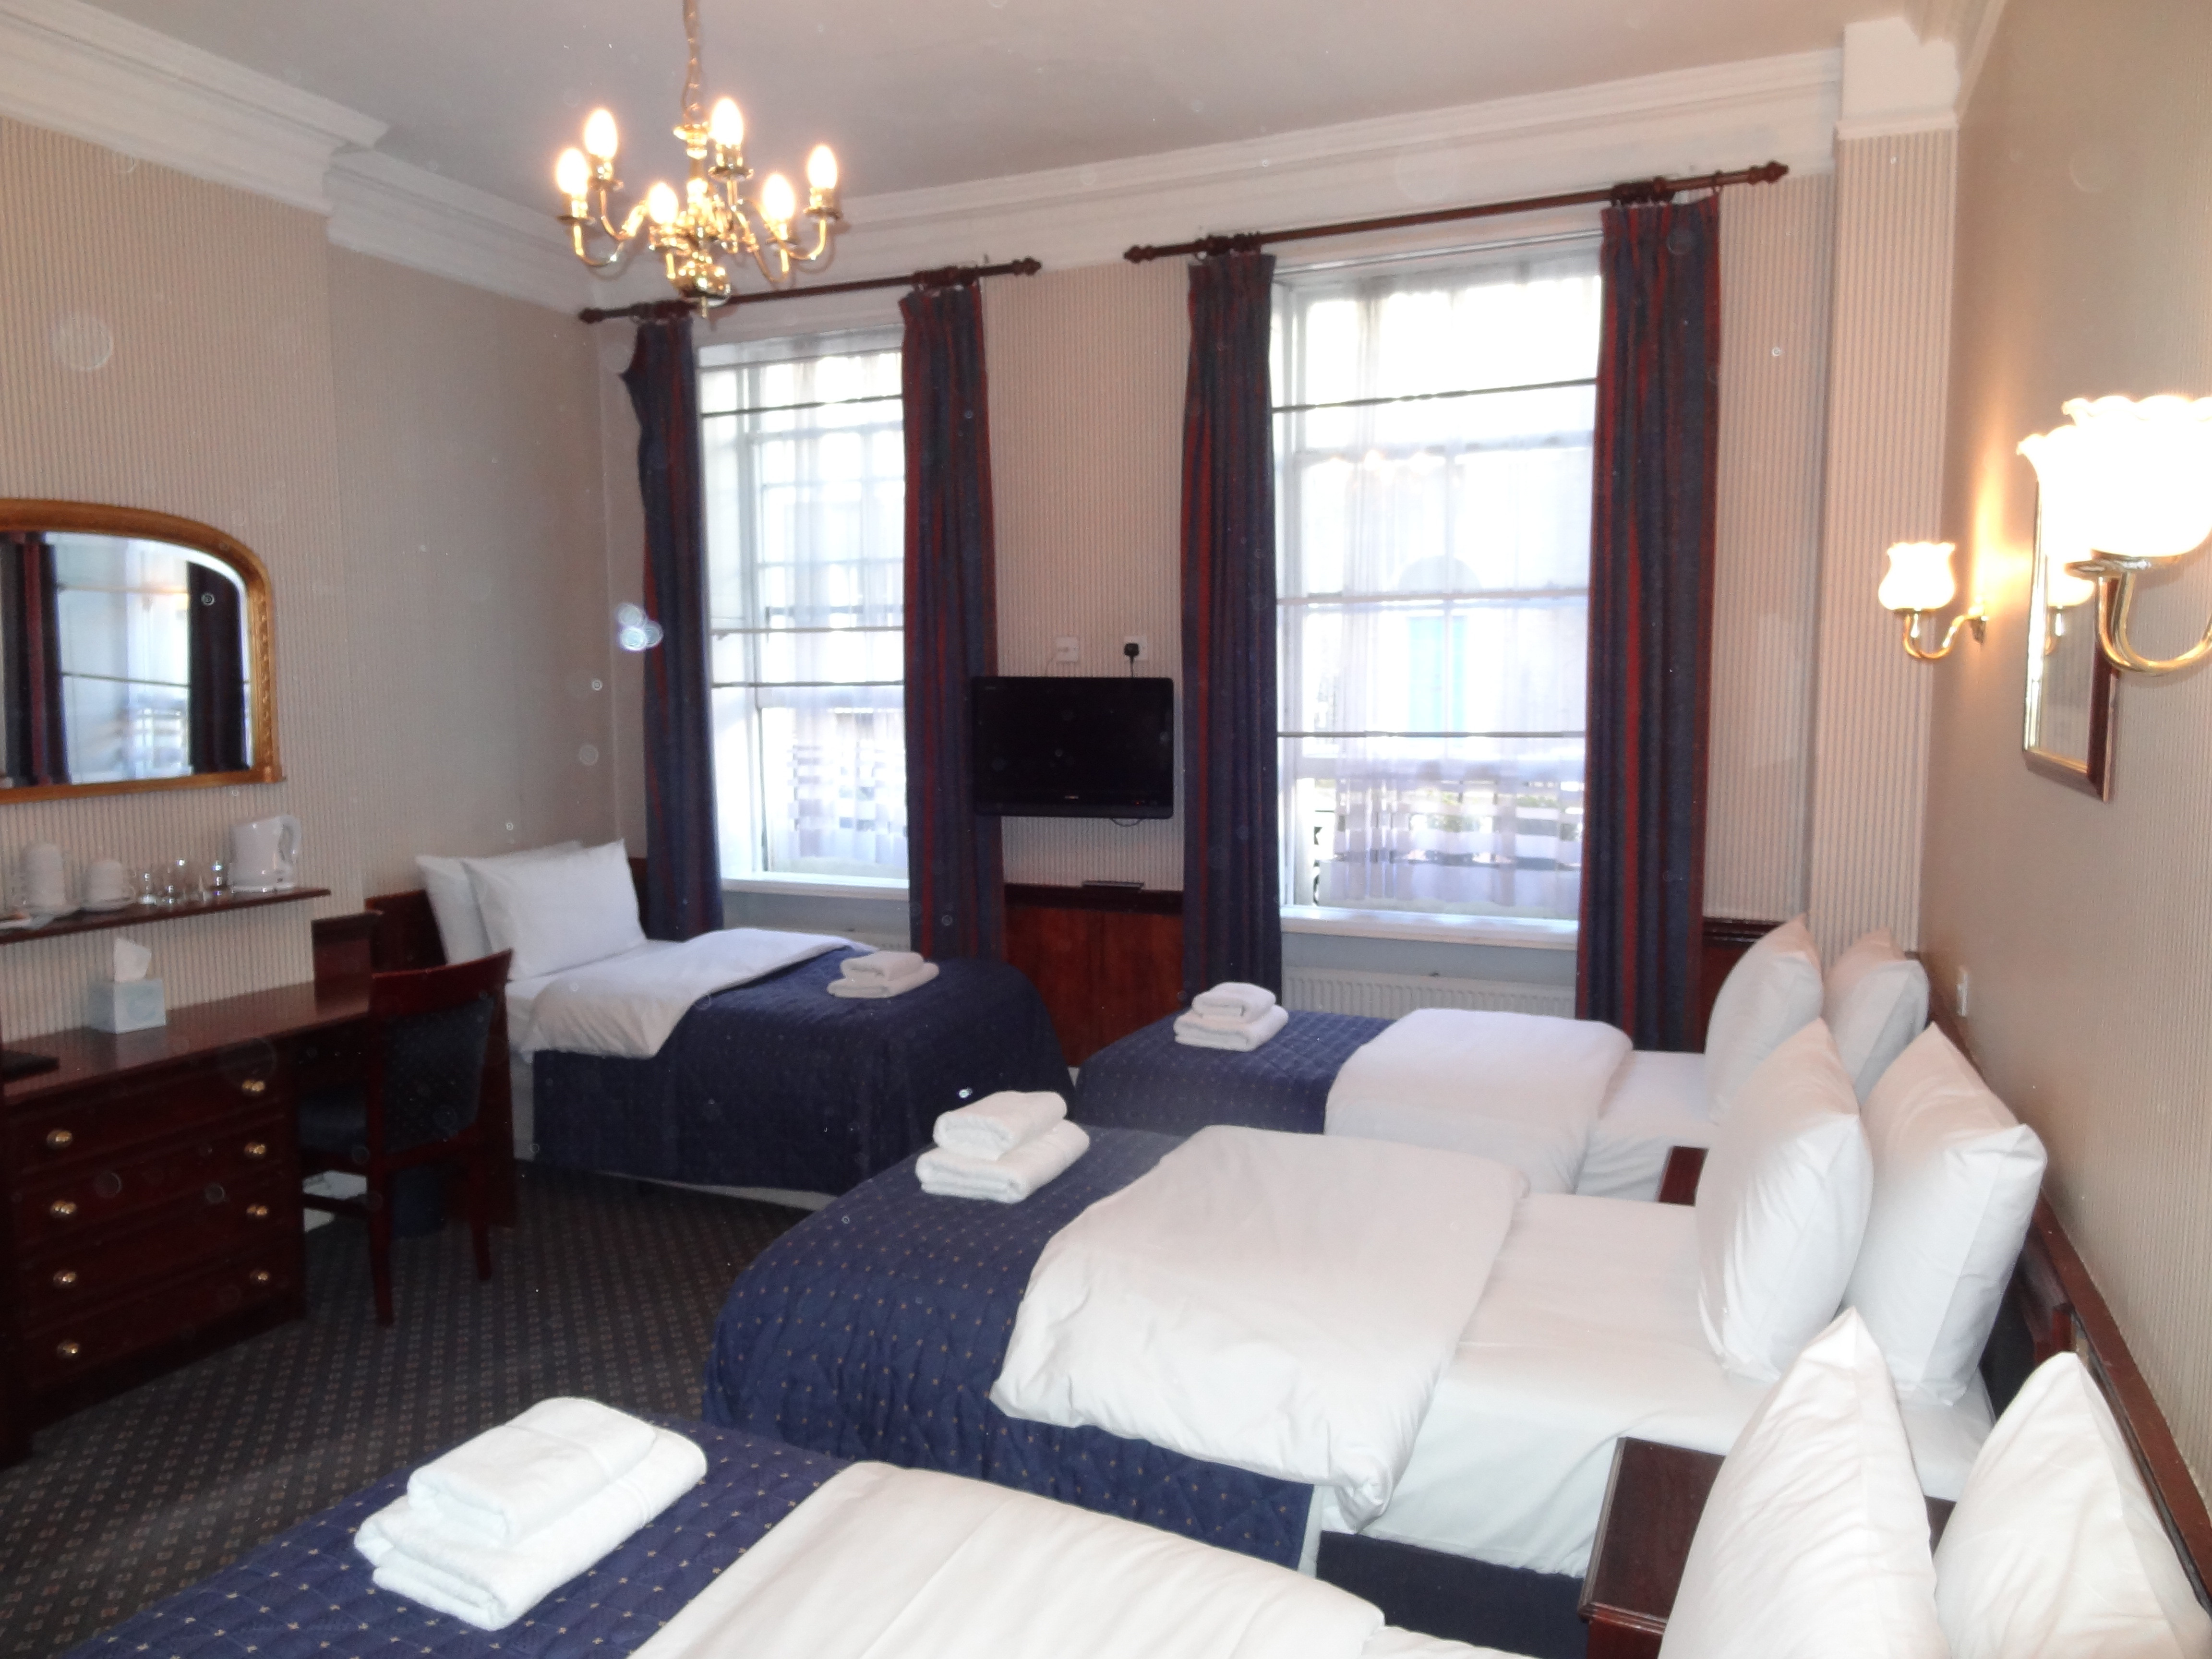 Best ideas about Family Room Hotel . Save or Pin Best Family Hotel Rooms London UK Now.